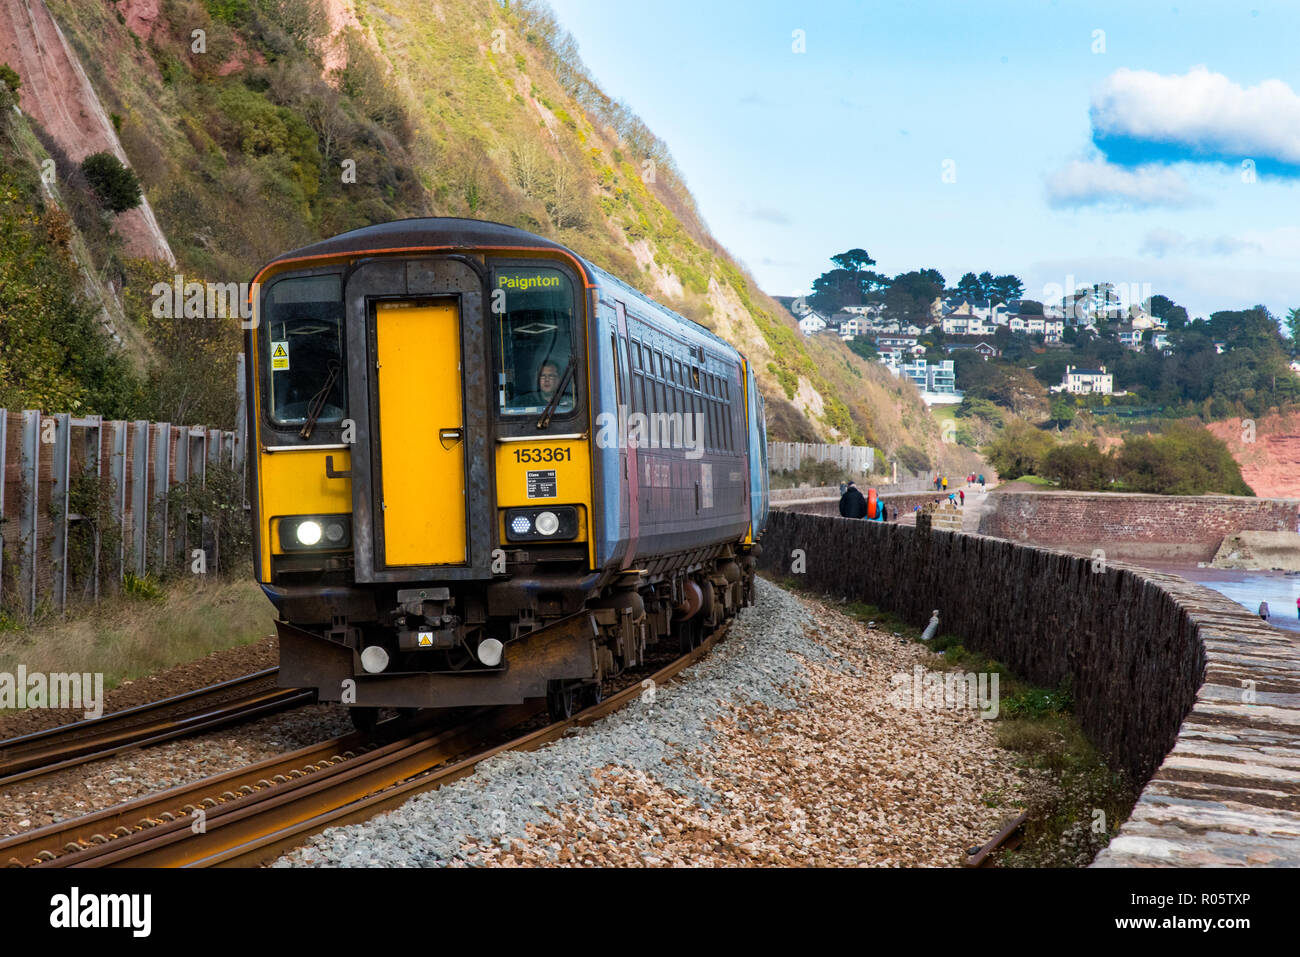 TEIGNMOUTH, DEVON, UK, 28OCT2018: GWR Class 153 Super Sprinter Trainset 153361. Approaching Teignmouth Station - Stock Image